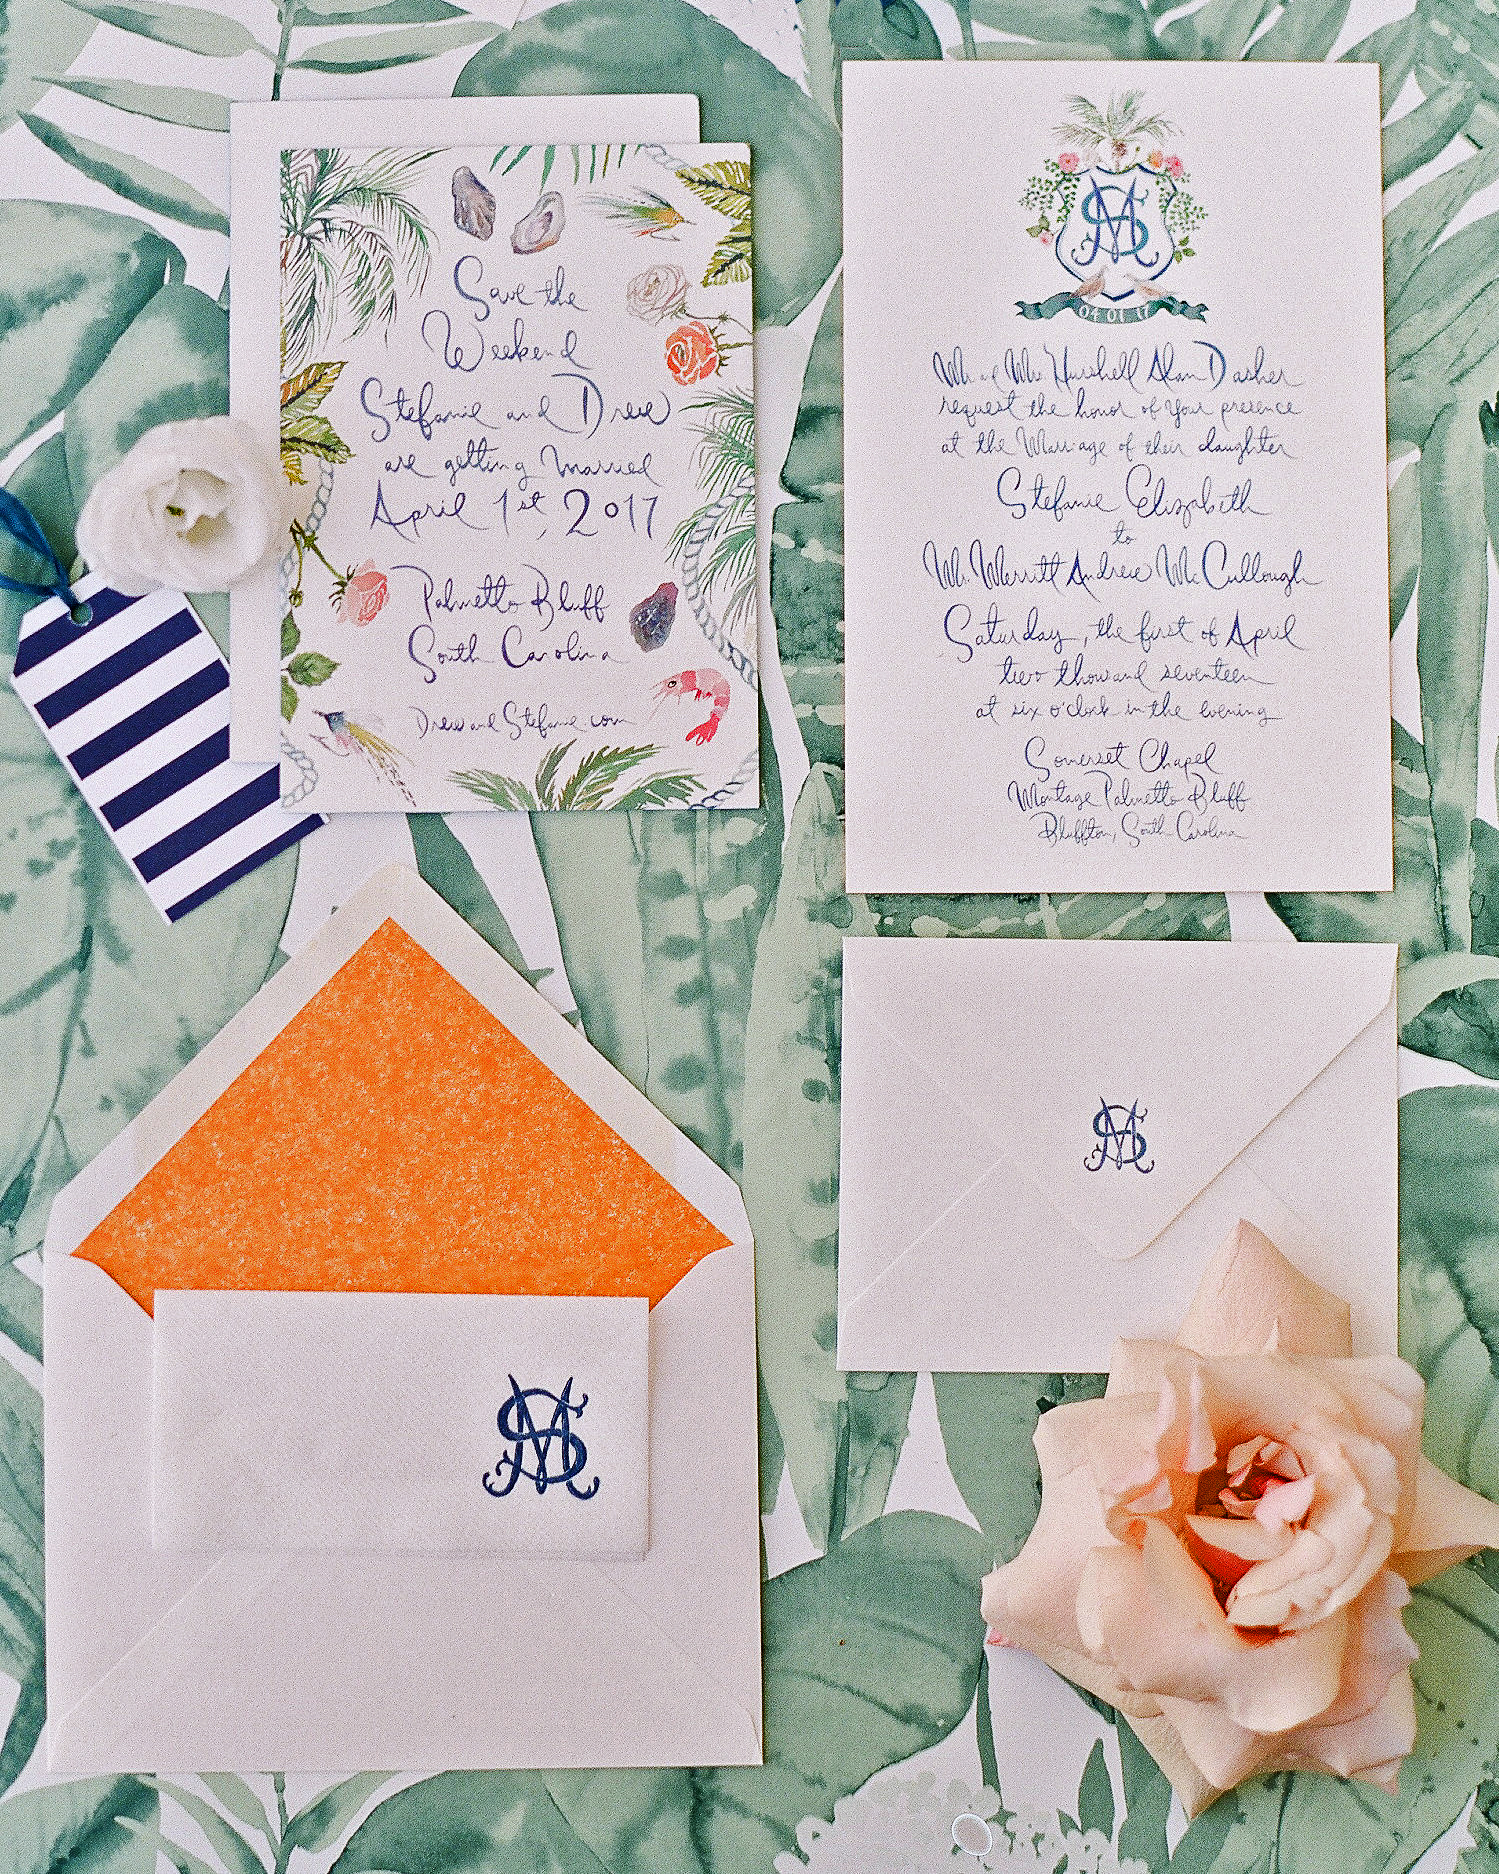 stefanie drew wedding invite